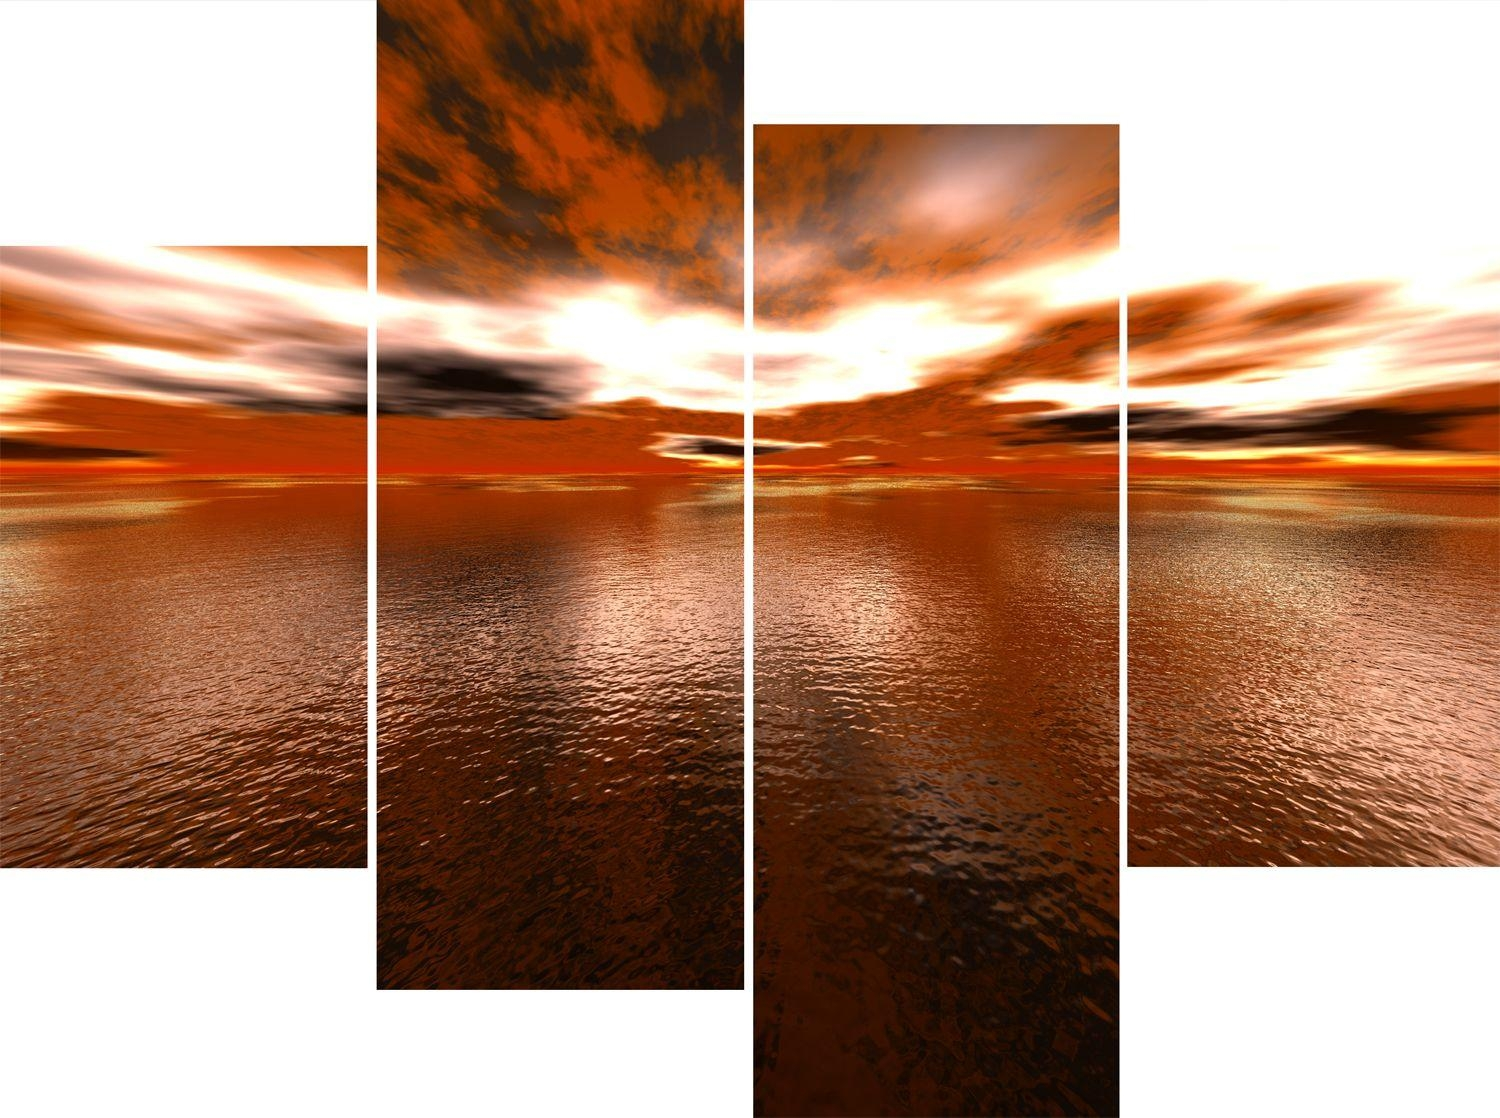 Mesmerizing Large Canvas Wall Art For Your Home Decorations With Regard To Uk Contemporary Wall Art (Image 14 of 20)